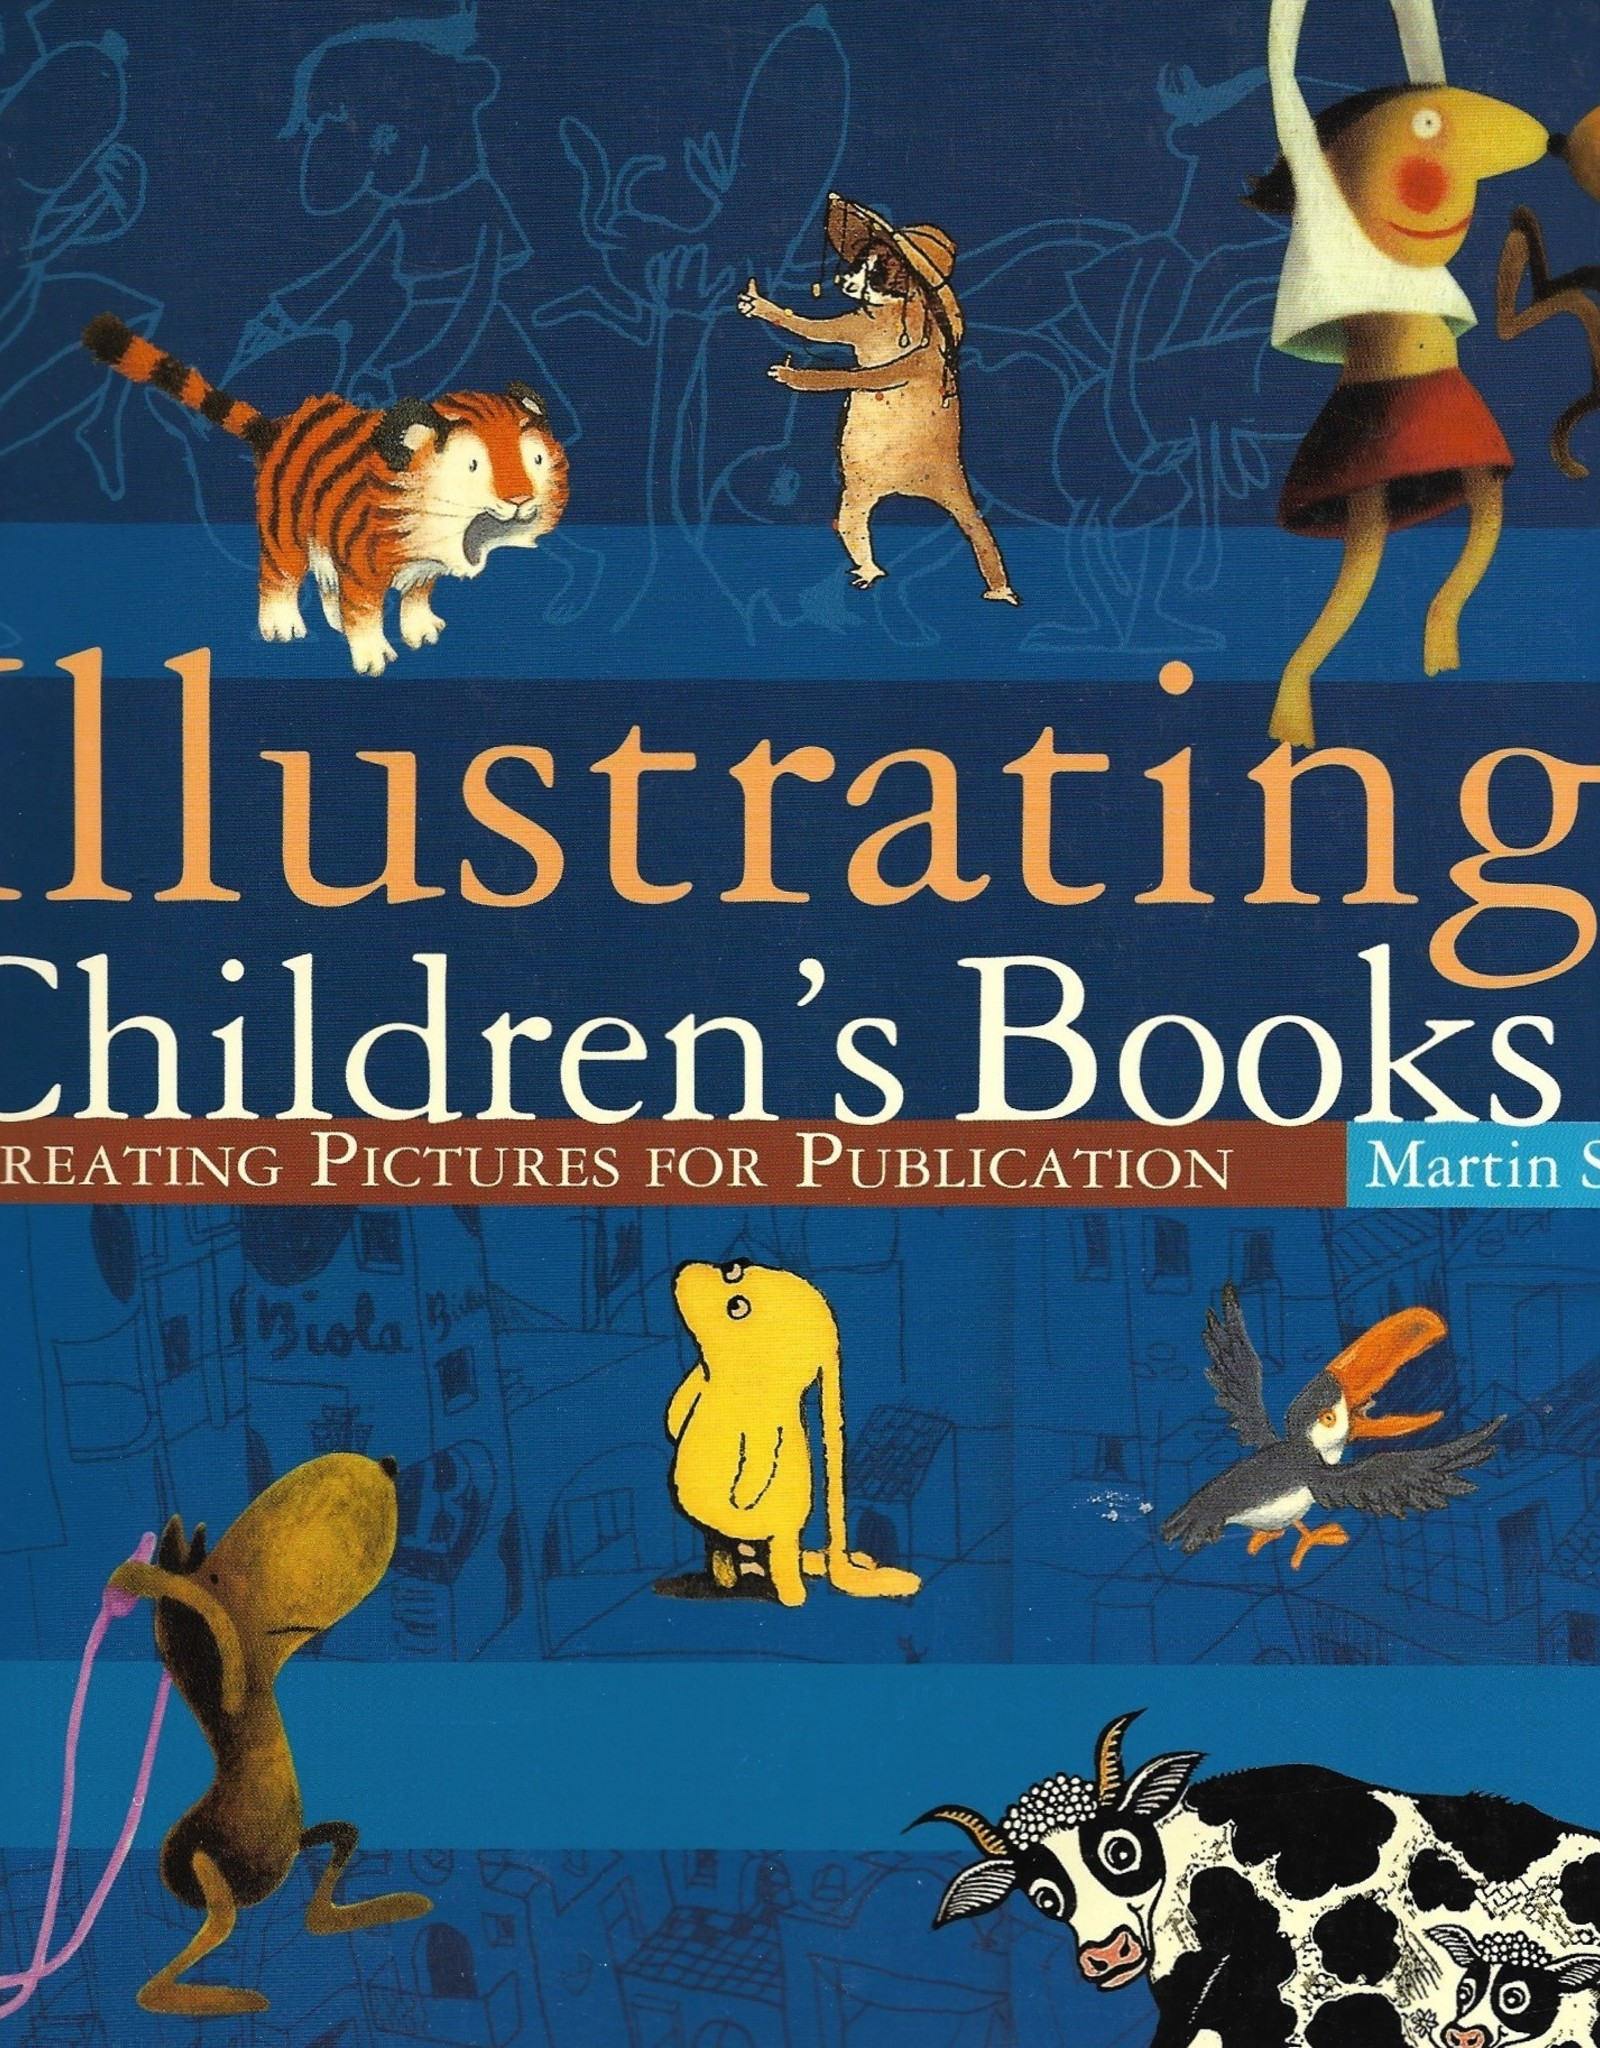 Illustarting Children's Books: Creating Pictures for Publication